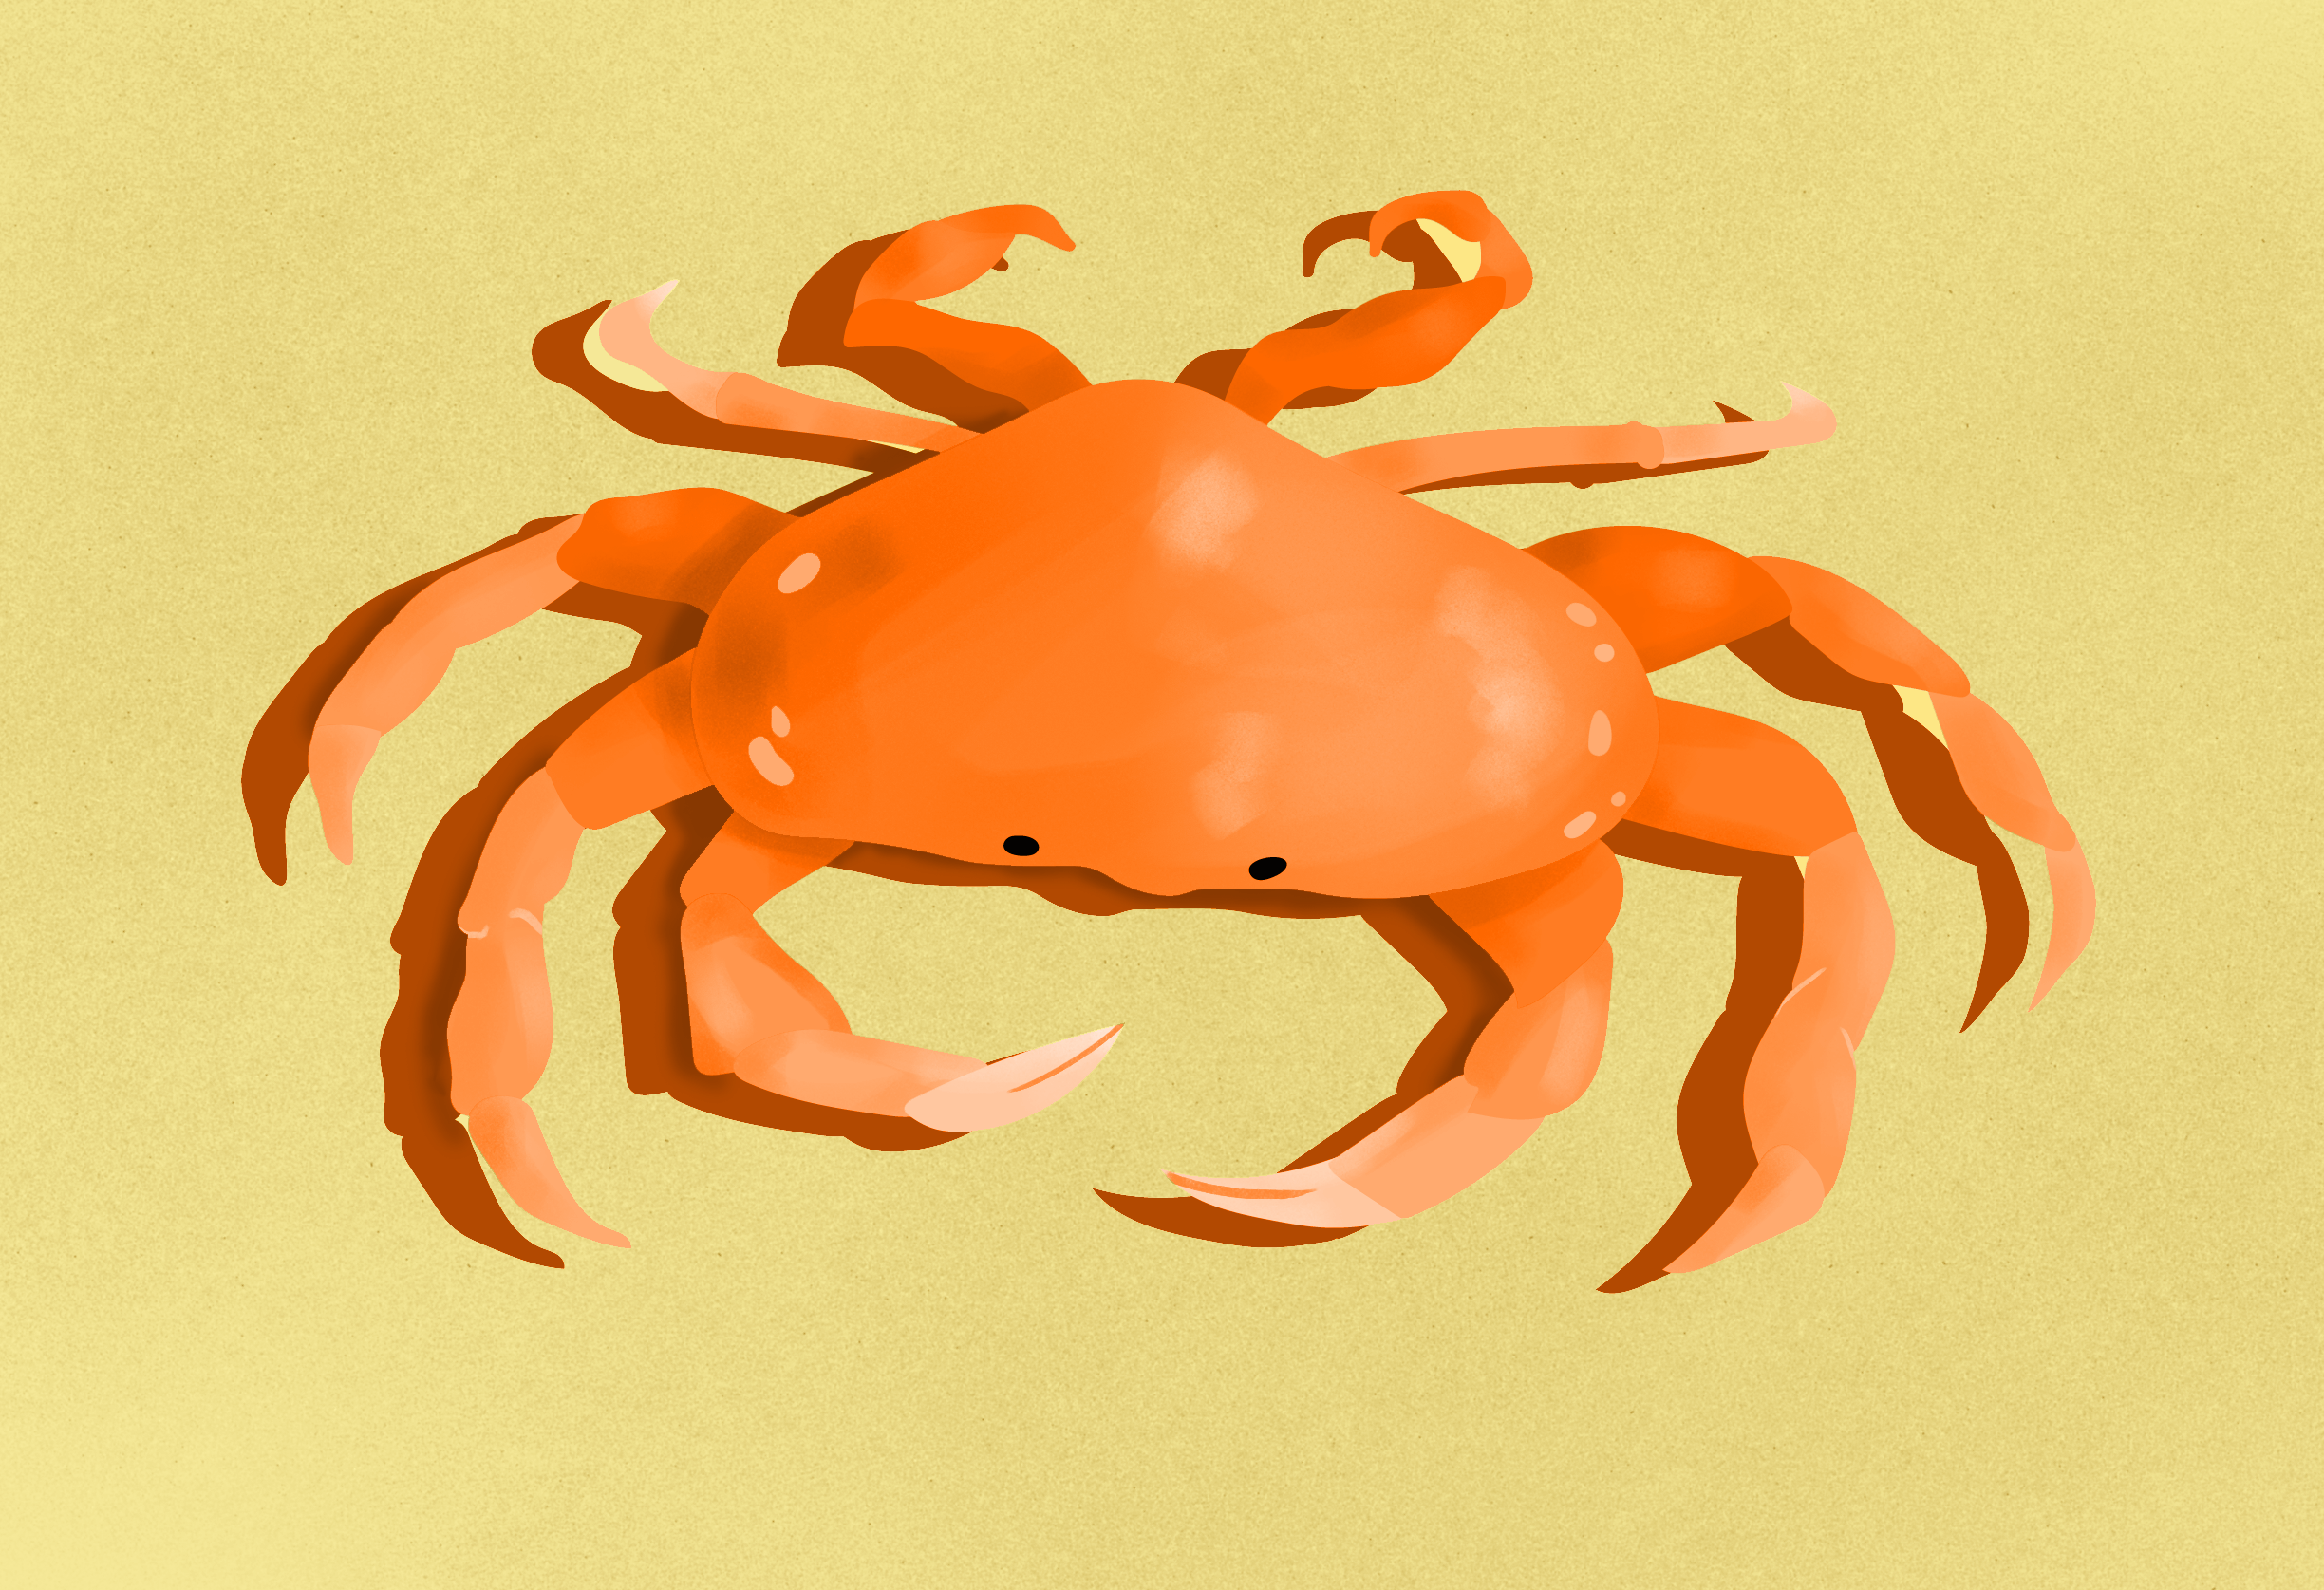 Mr Crab on a scorching hot beach